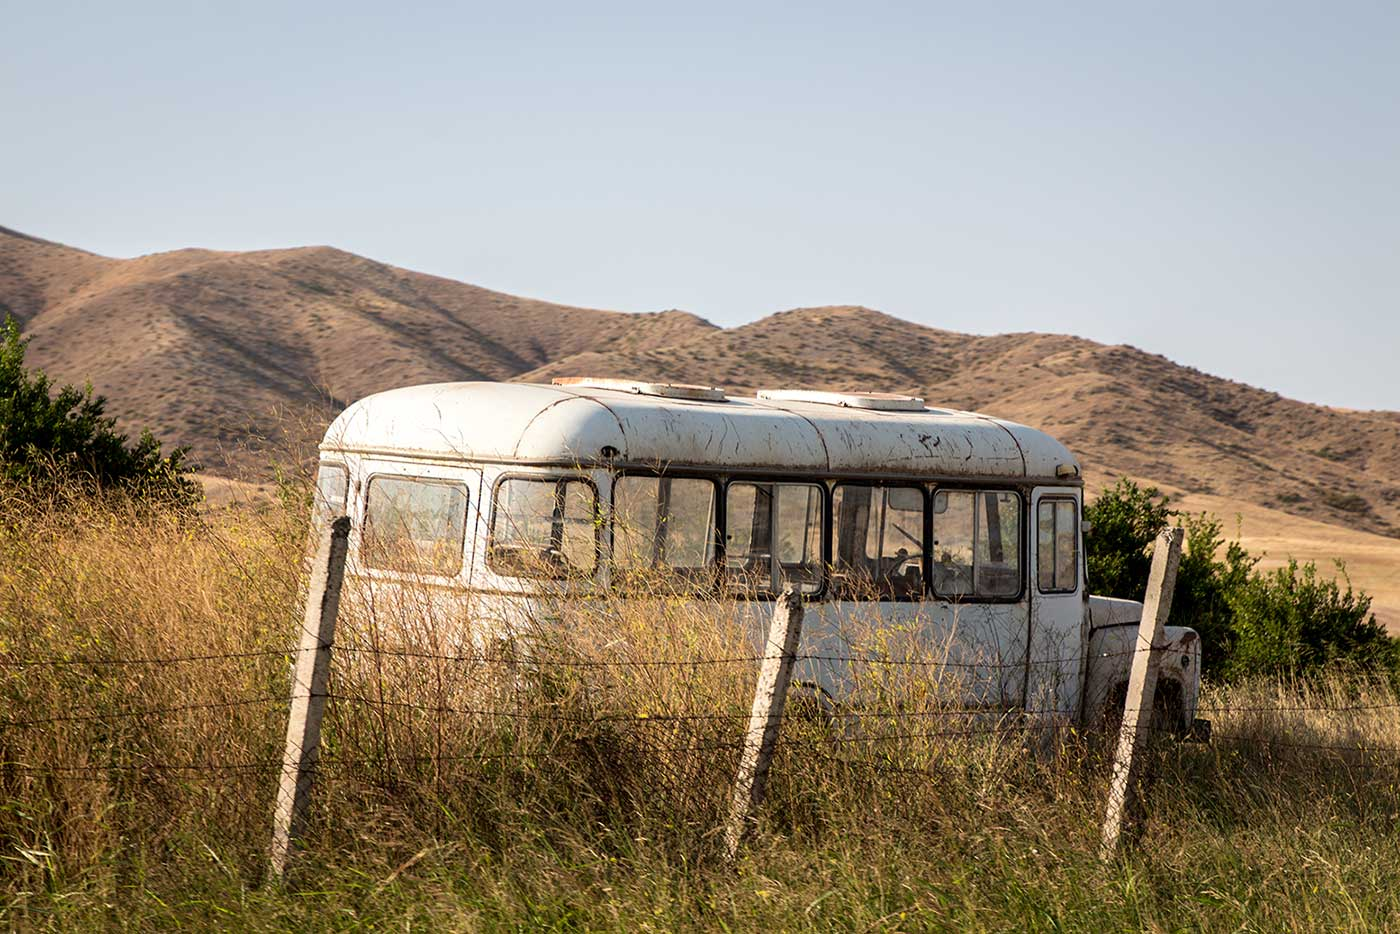 Abandoned bus in Agdam, Nagorno-Karabakh (Artsakh Republic).